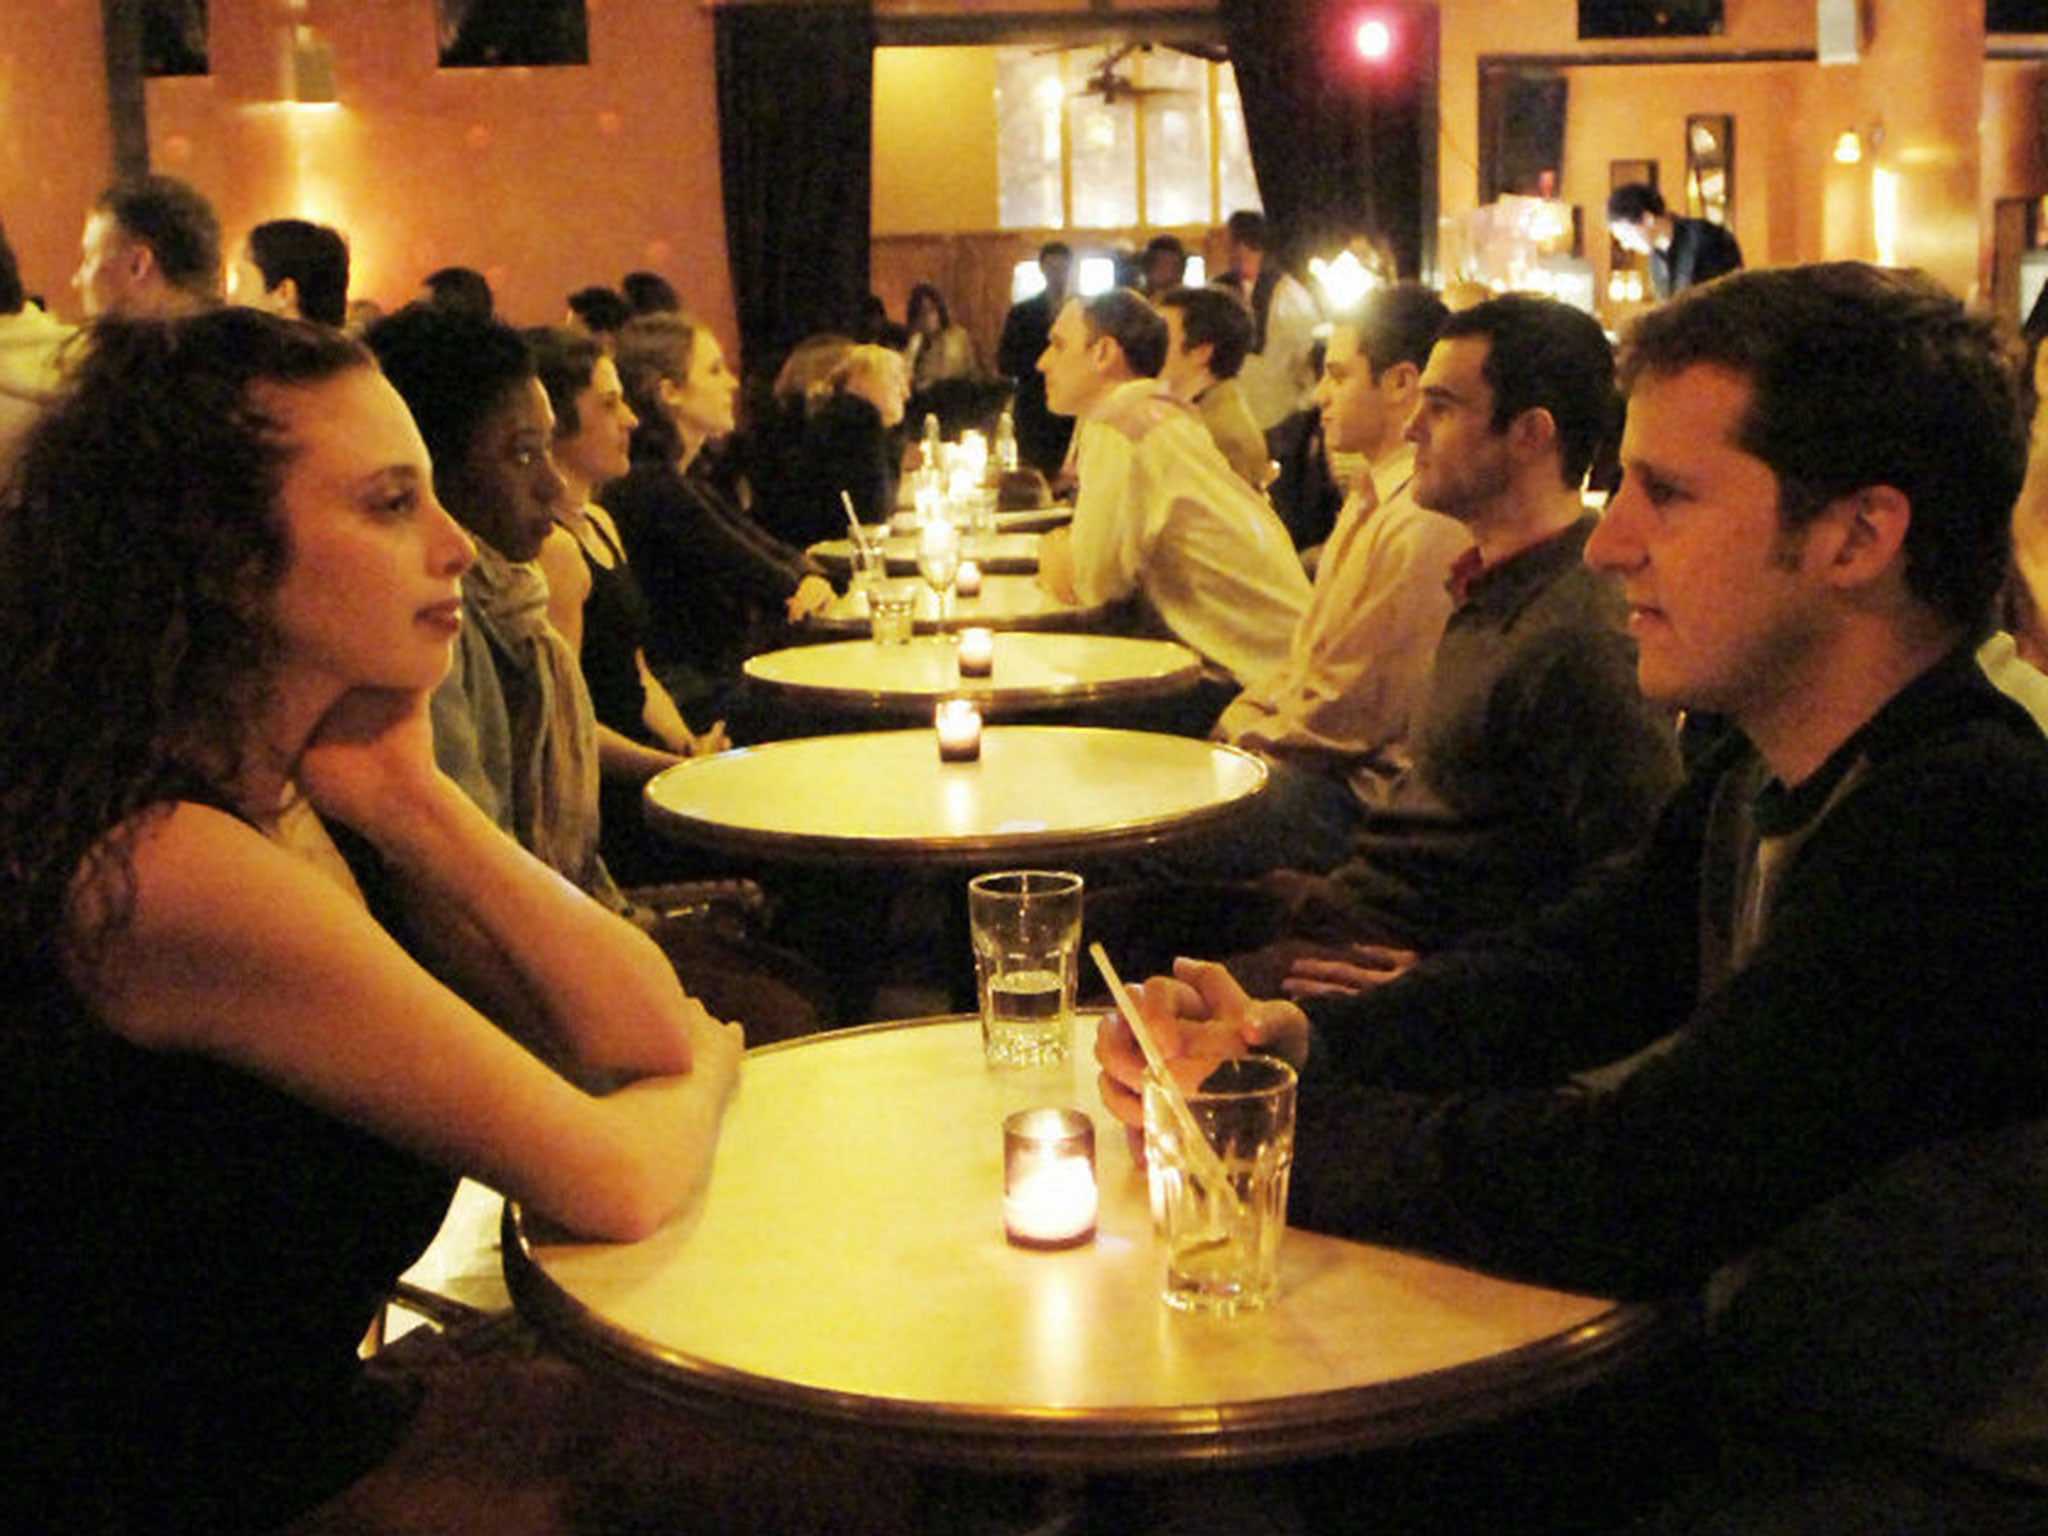 speed dating embarrassing To see more great tips about speed dating, visit our website:   speed dating is an organized event where a group of eligible singles.